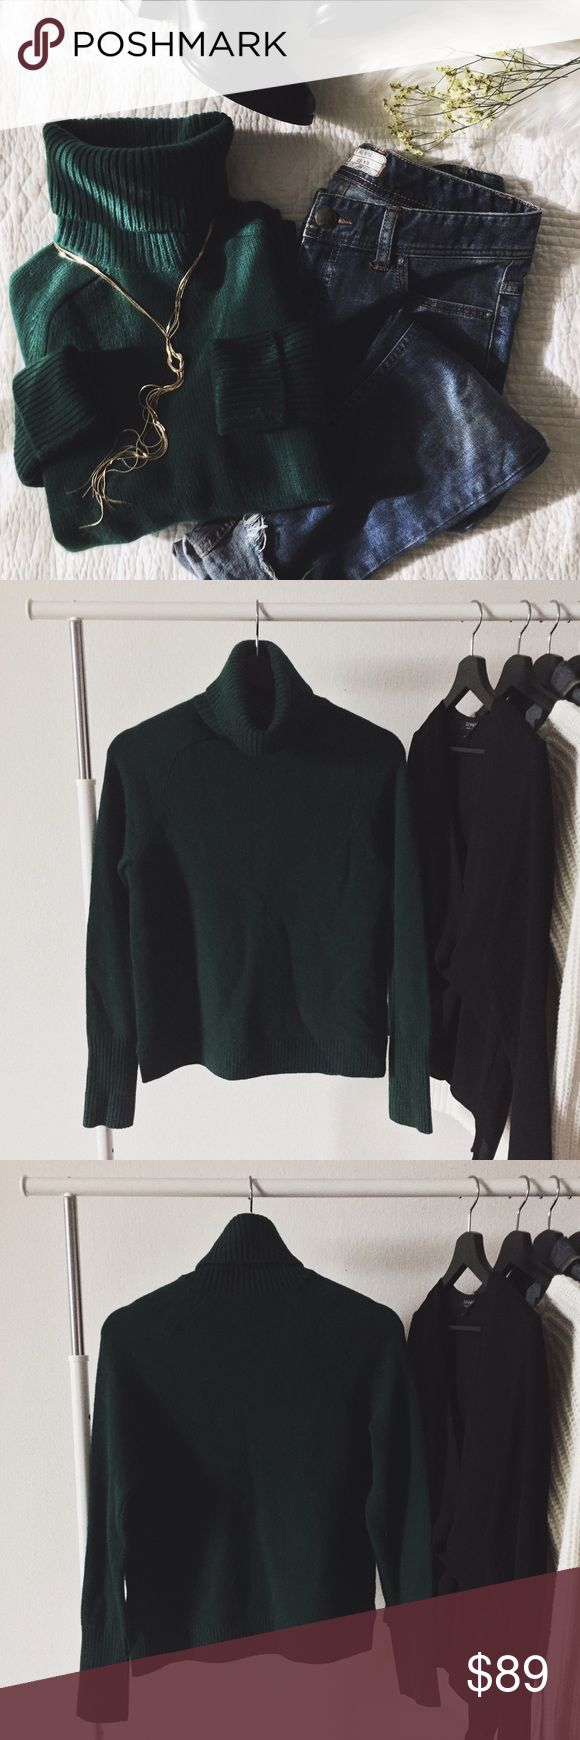 """ᴊ. ᴄʀᴇᴡ ʜᴜɴᴛᴇʀ ɢʀᴇᴇɴ ᴛᴜʀᴛʟᴇ ɴᴇᴄᴋ NWT hunter green turtle neck from J. Crew. Such a beautiful sweater to add to your closet! I personally think this sweater is perfect for the holidays. Awesome piece to layer with and has a comfortable stretch to it.  ‣50% ᴡᴏᴏʟ, 30% ɴʏʟᴏɴ, 15% ᴄᴀsʜᴍᴇʀᴇ ‣ʟᴇɴɢᴛʜ: ᴀʙᴏᴜᴛ 22 1/2"""" ‣ʙᴜsᴛ: 35""""   ✨Pet friendly home ✨Please feel free to ask any questions! ✨Reasonable offers are welcomed ✨Bundle to save more! J. Crew Sweaters Cowl & Turtlenecks"""